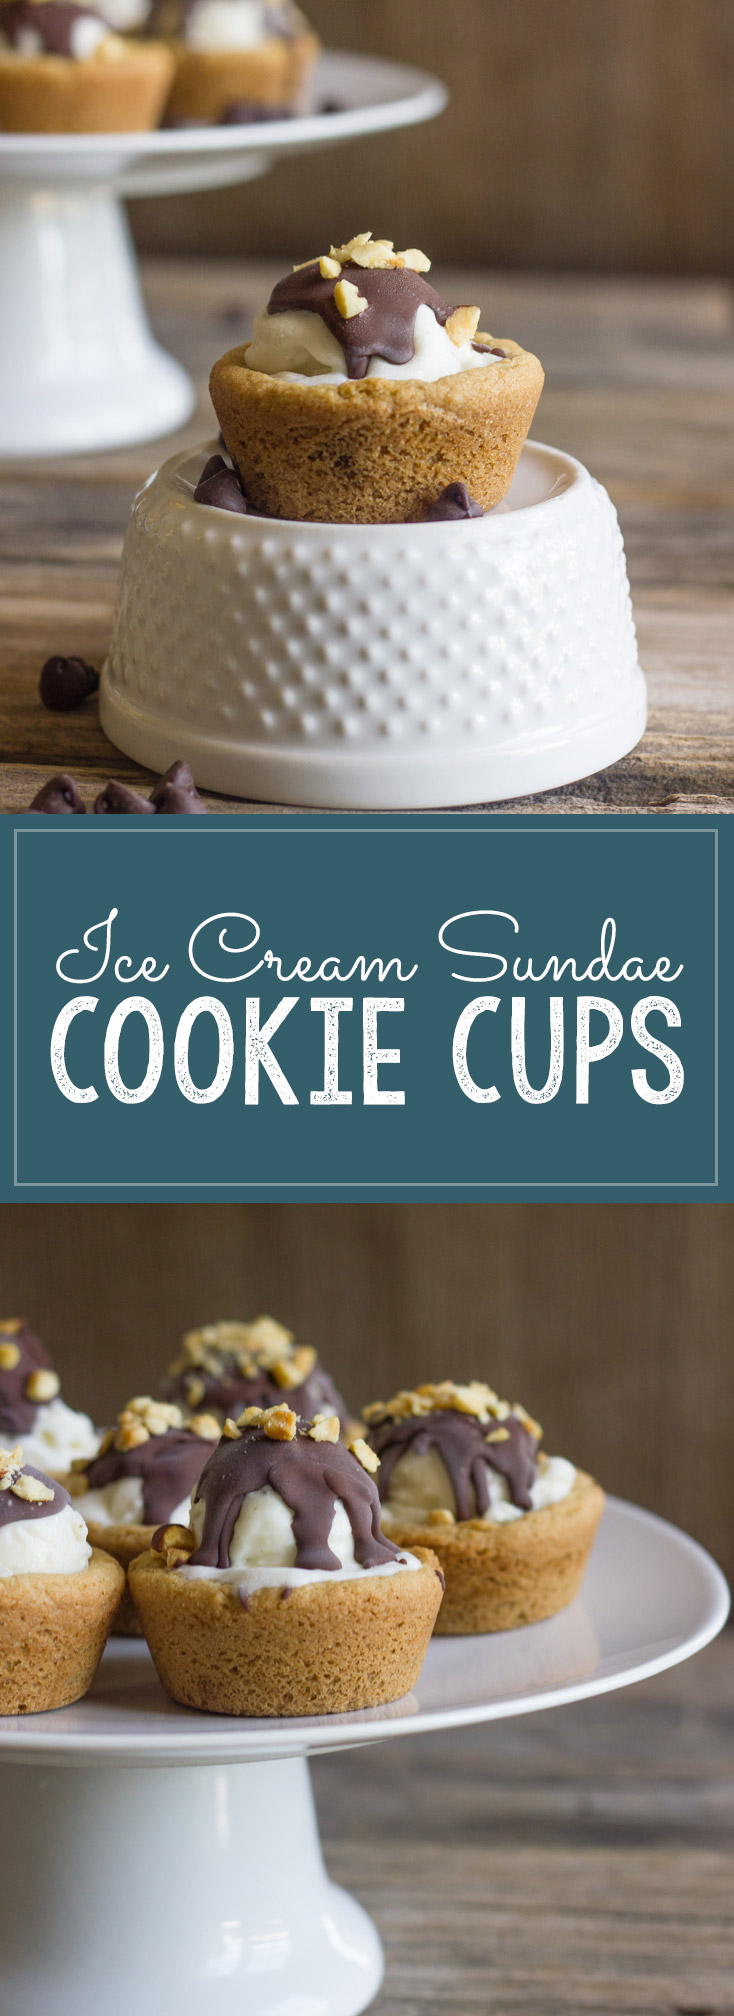 These Ice Cream Sundae Cookie Cups are the perfect little summertime treat!